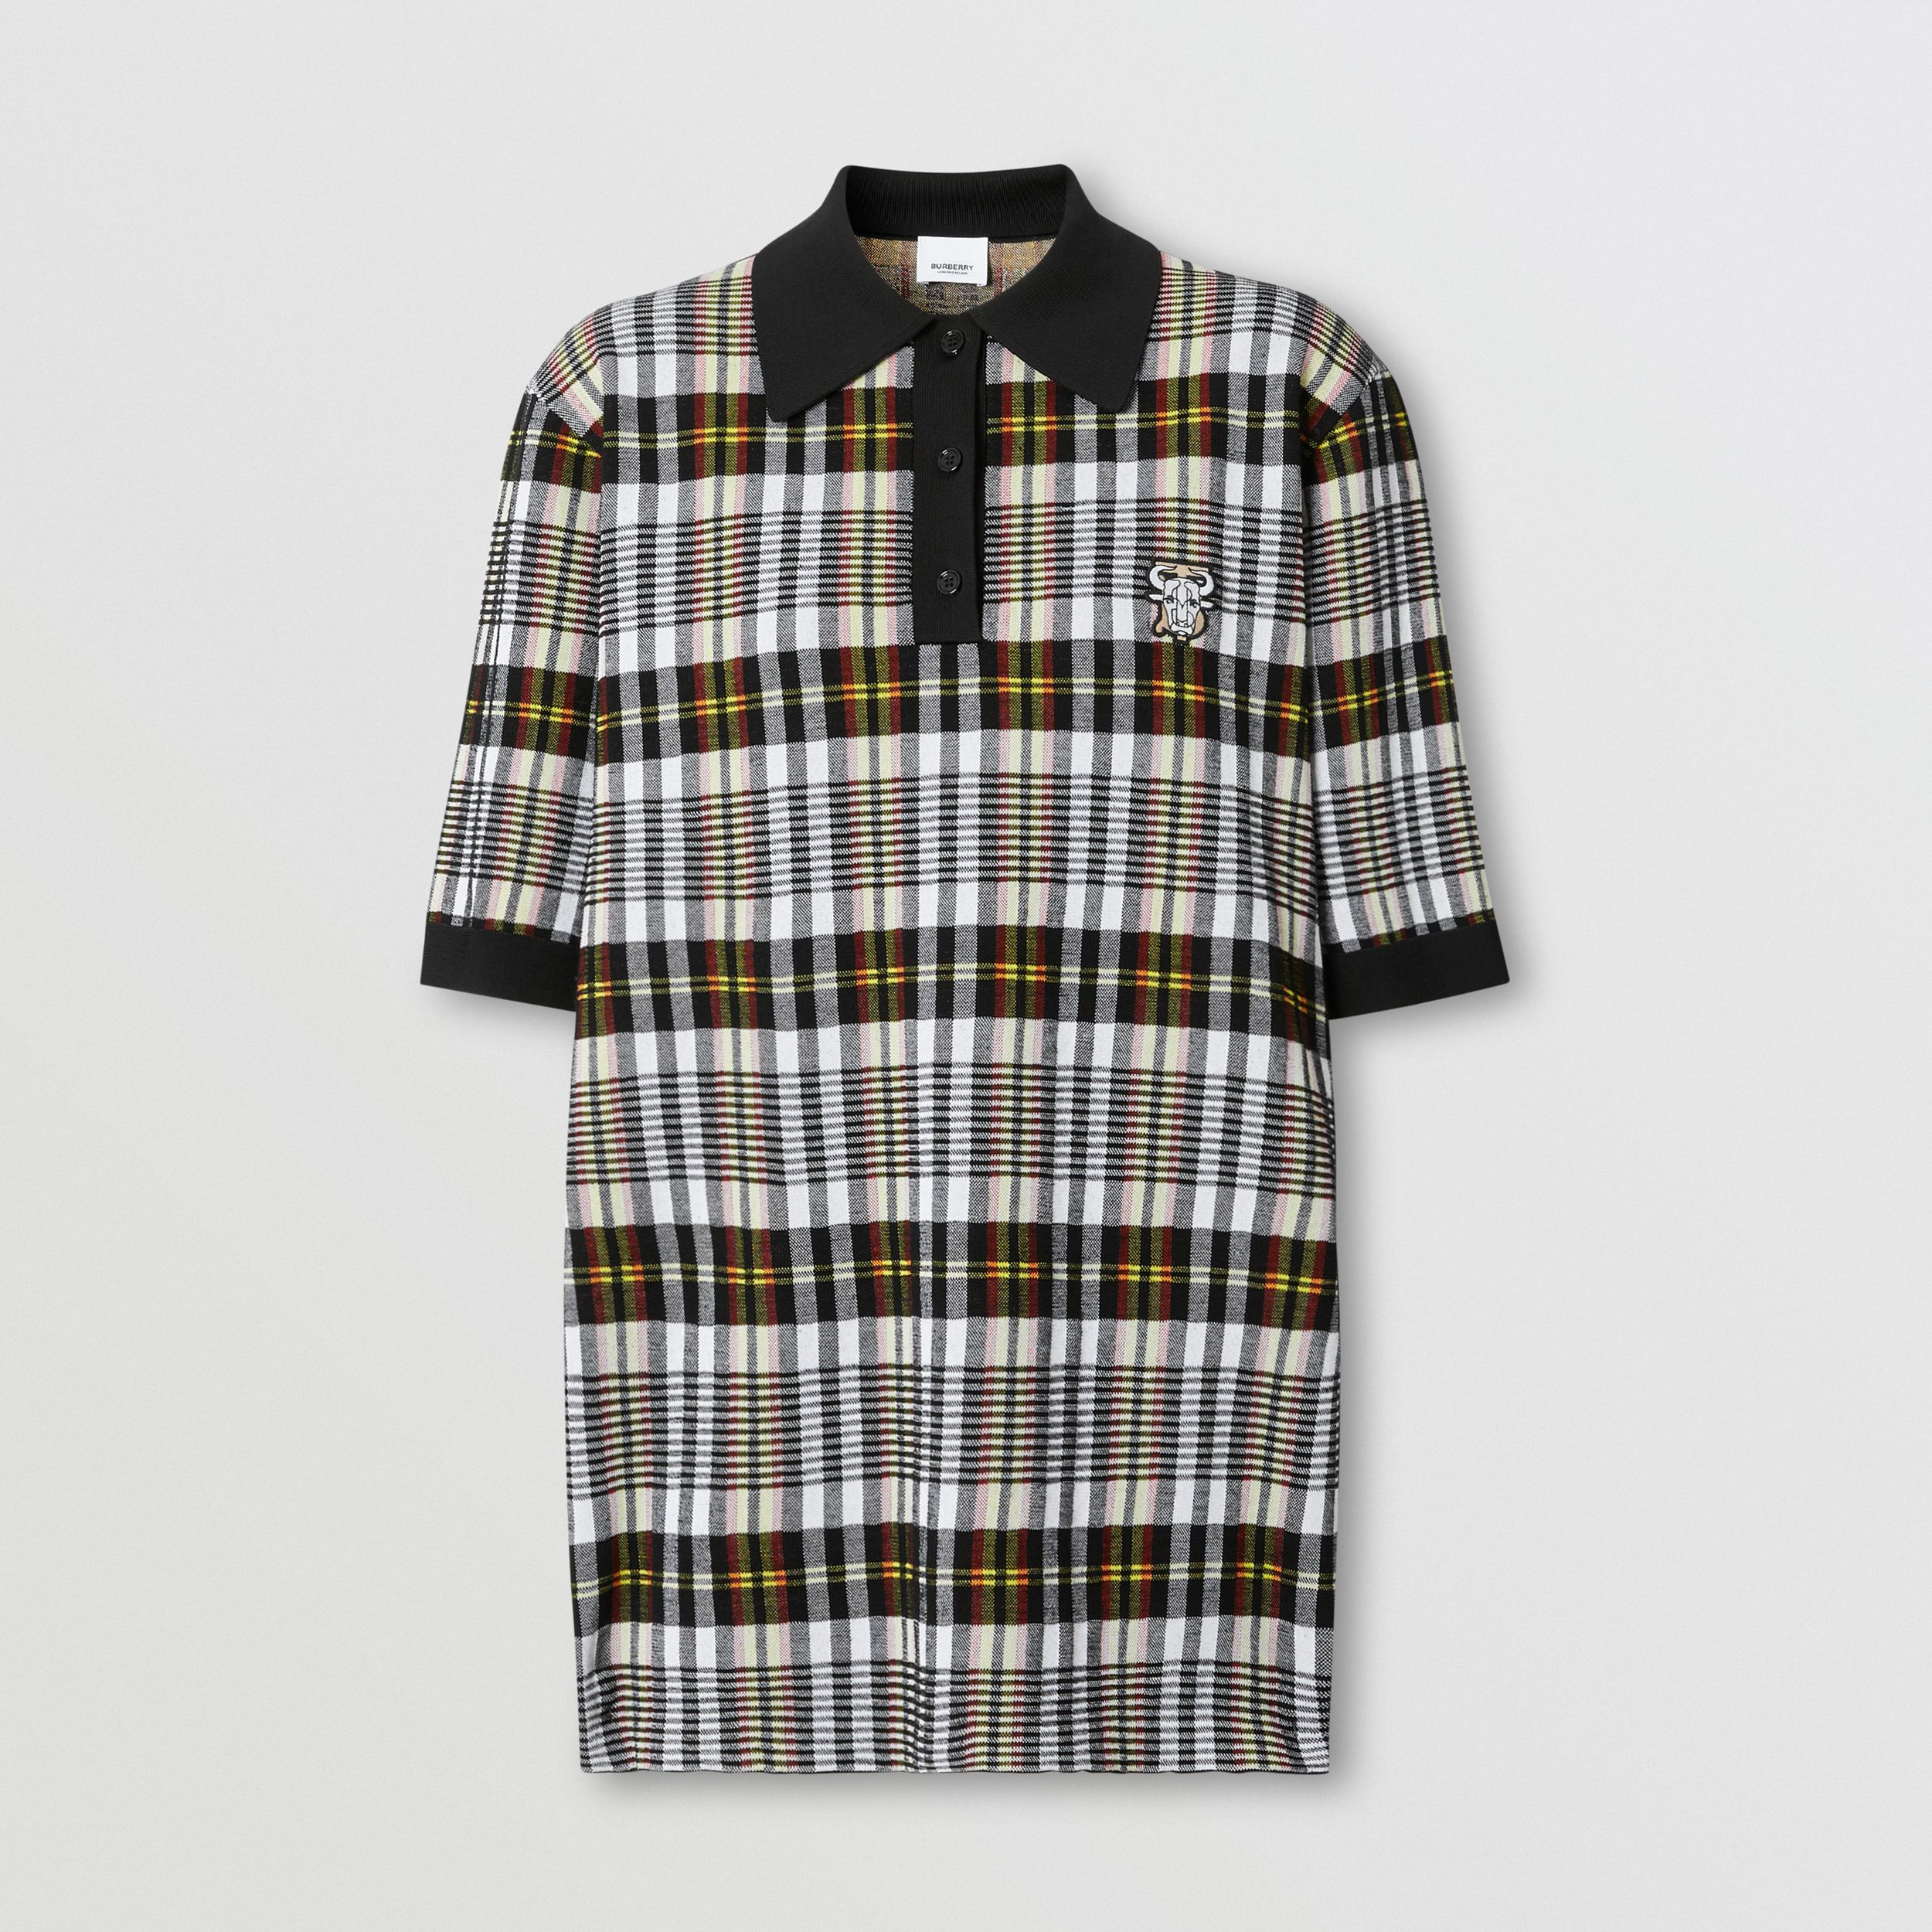 Monogram Motif Check Oversized Polo Shirt in Marigold Yellow - Women | Burberry - 4